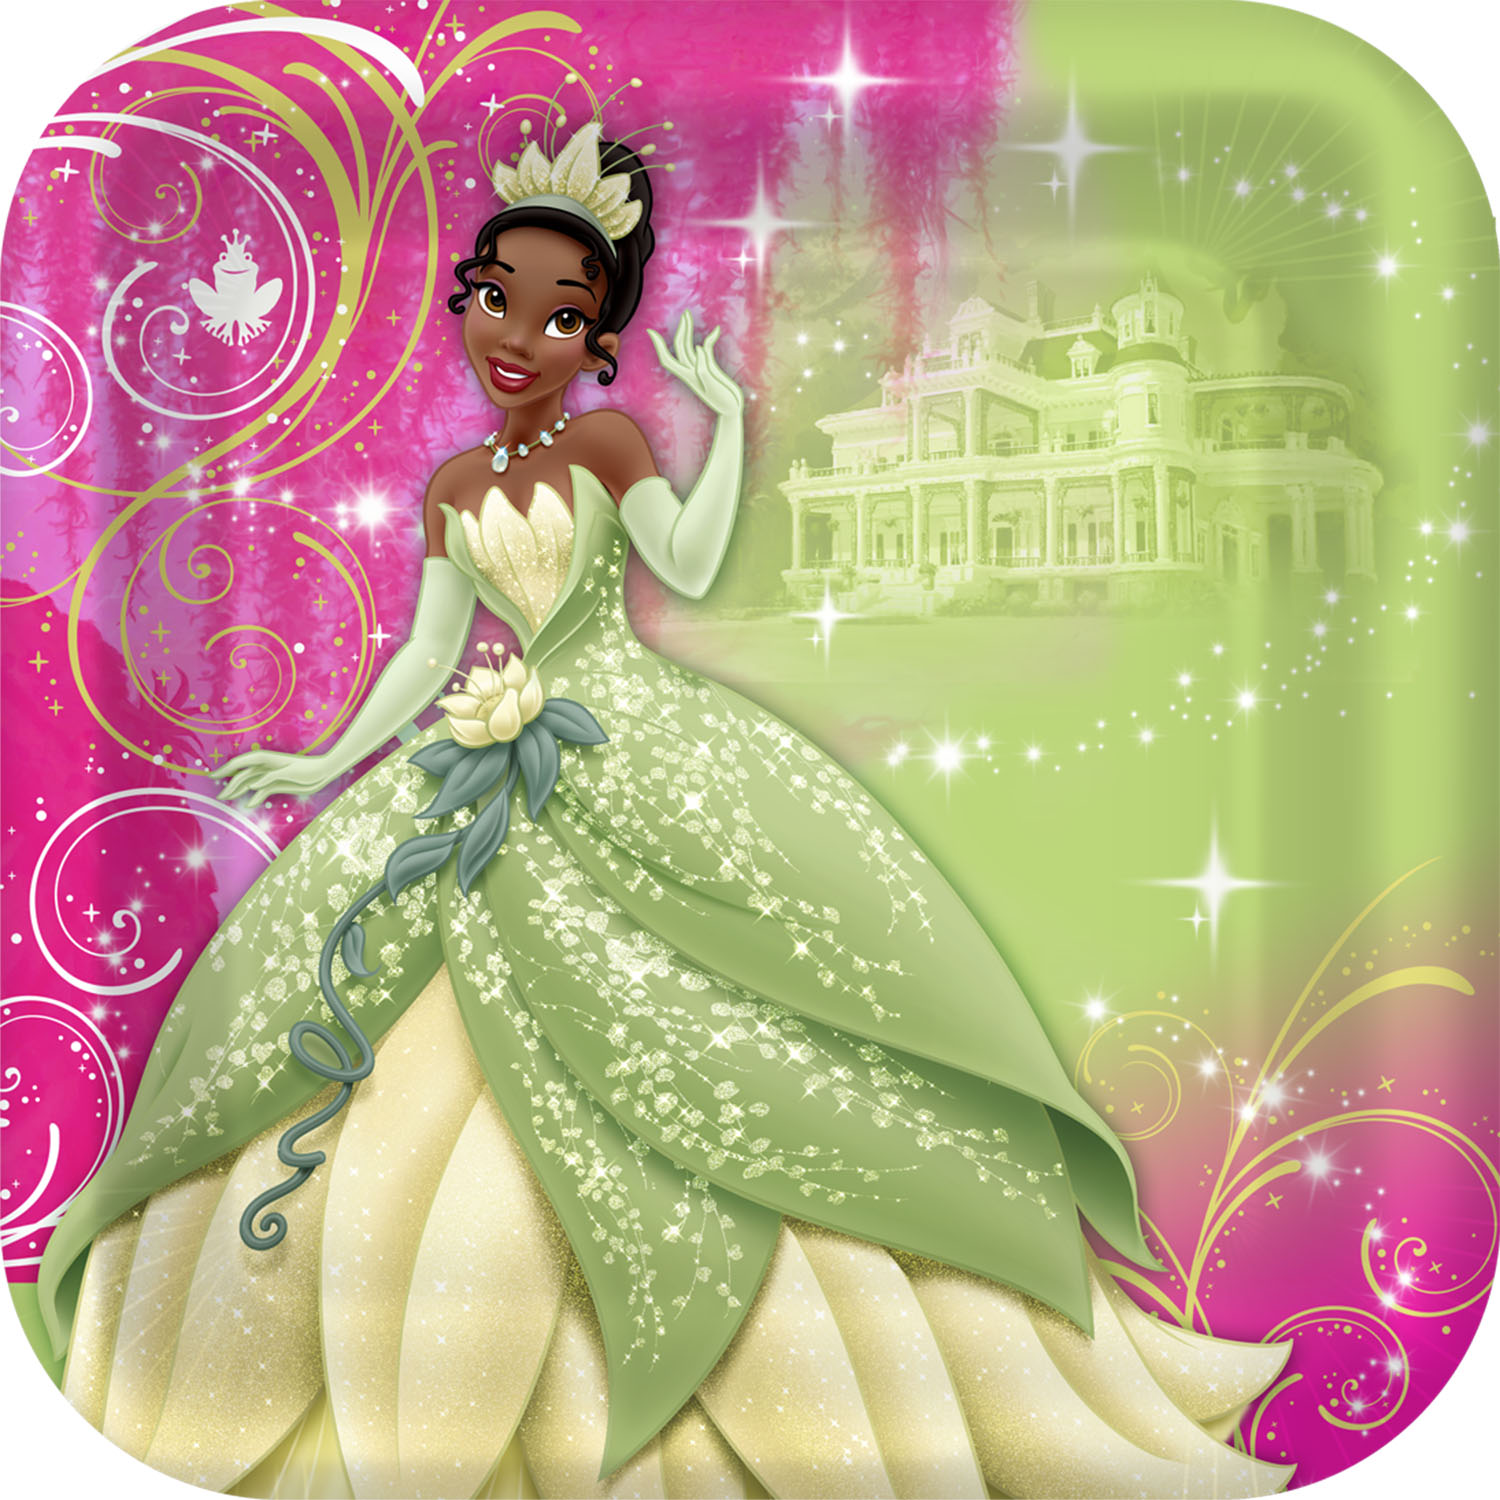 sc 1 st  ToyStop & Princess and the Frog Sparkle Party Supplies - Dinner Plates at ToyStop